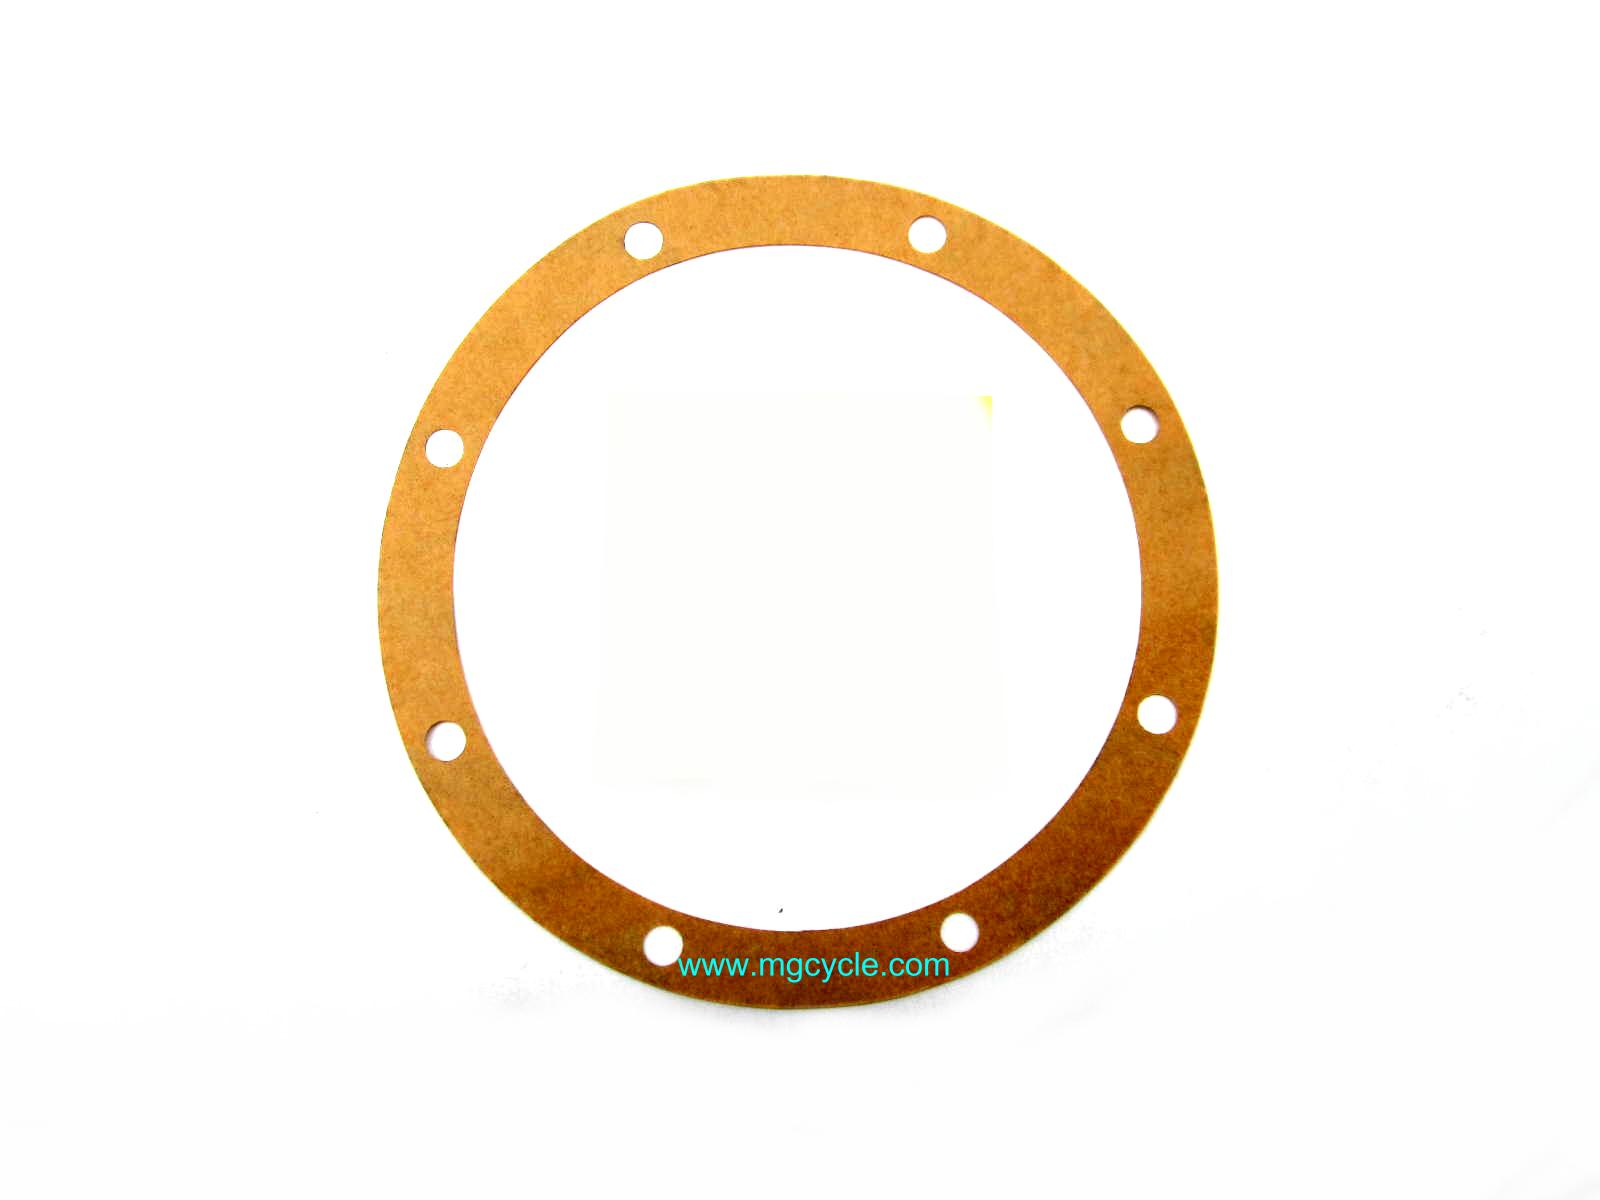 Rear drive flange gasket, disk brake big twins GU17350700